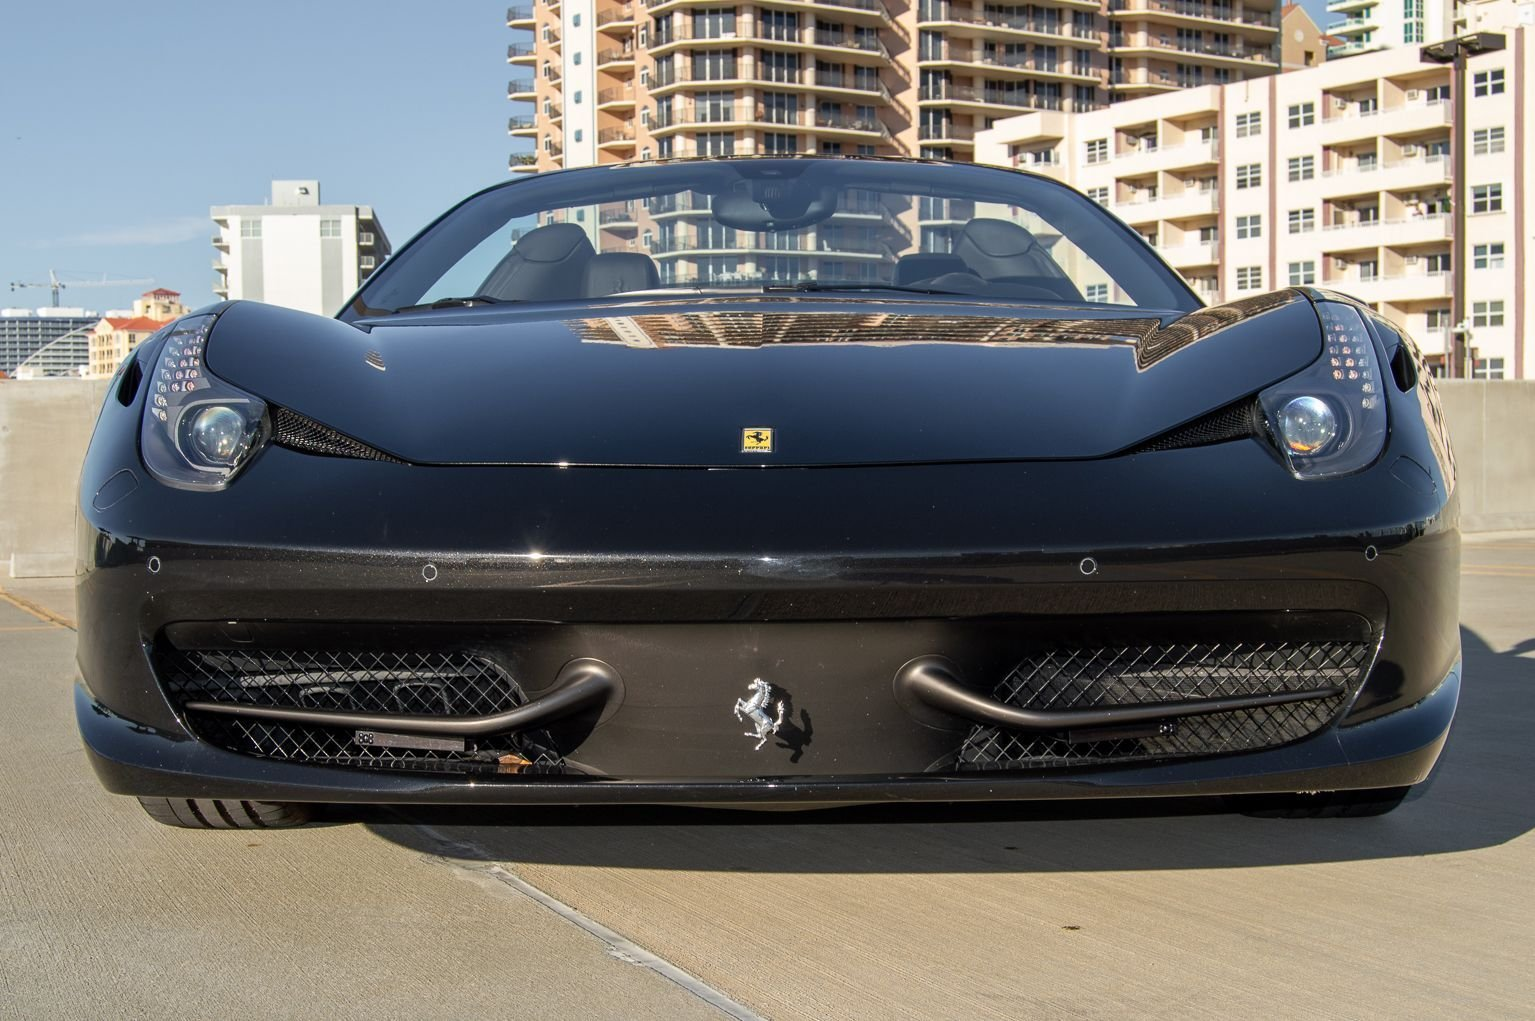 2012 Ferrari 458 Italia Spider F-1 clean Grey 13k miles $199 For Sale (picture 3 of 12)